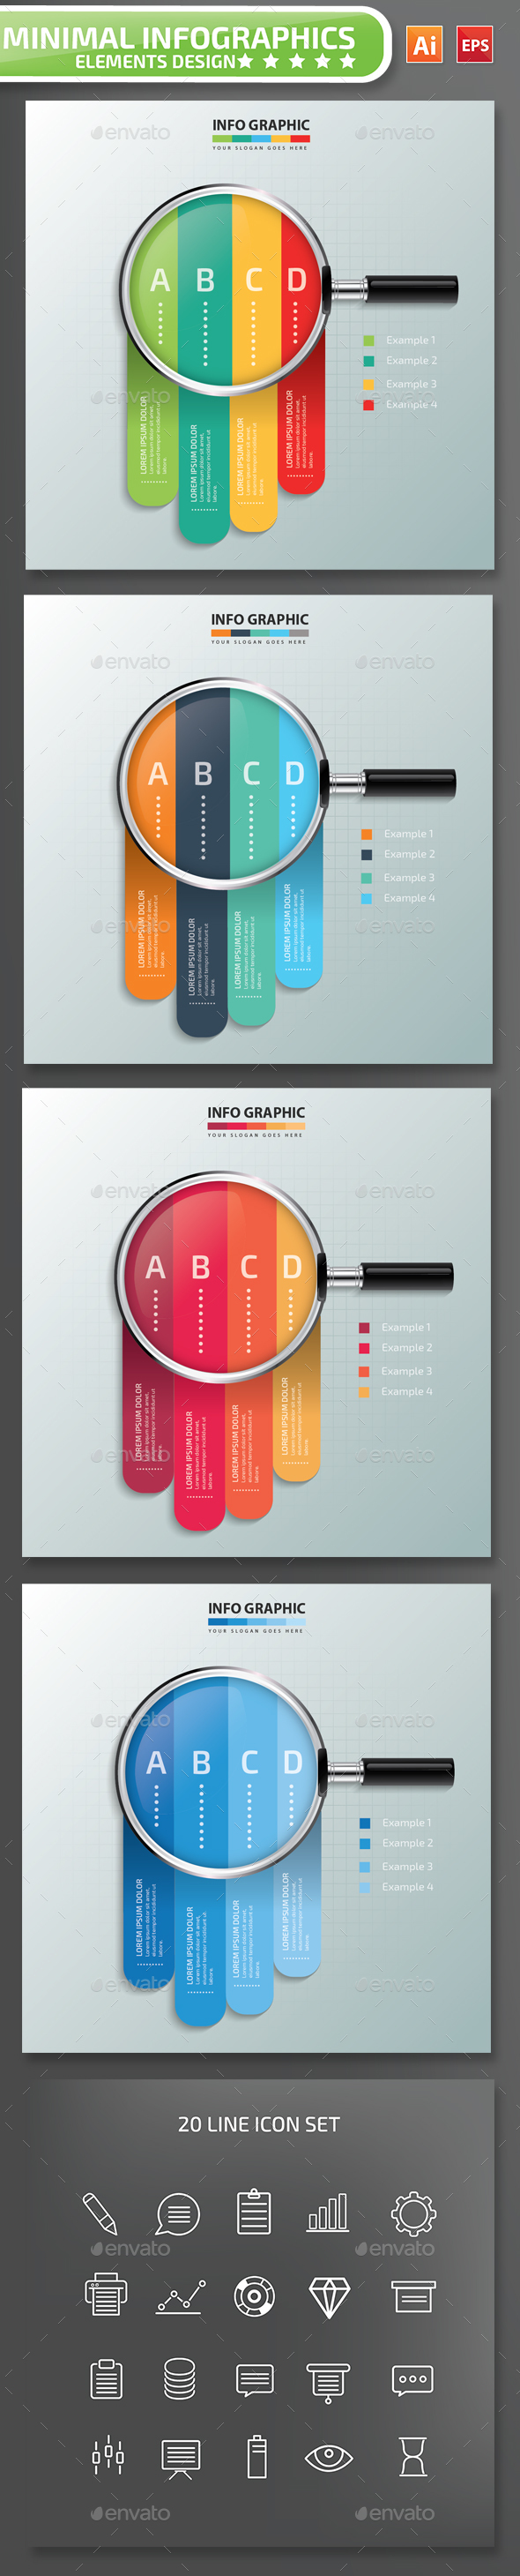 Searching Infographics Design 01 - Infographics